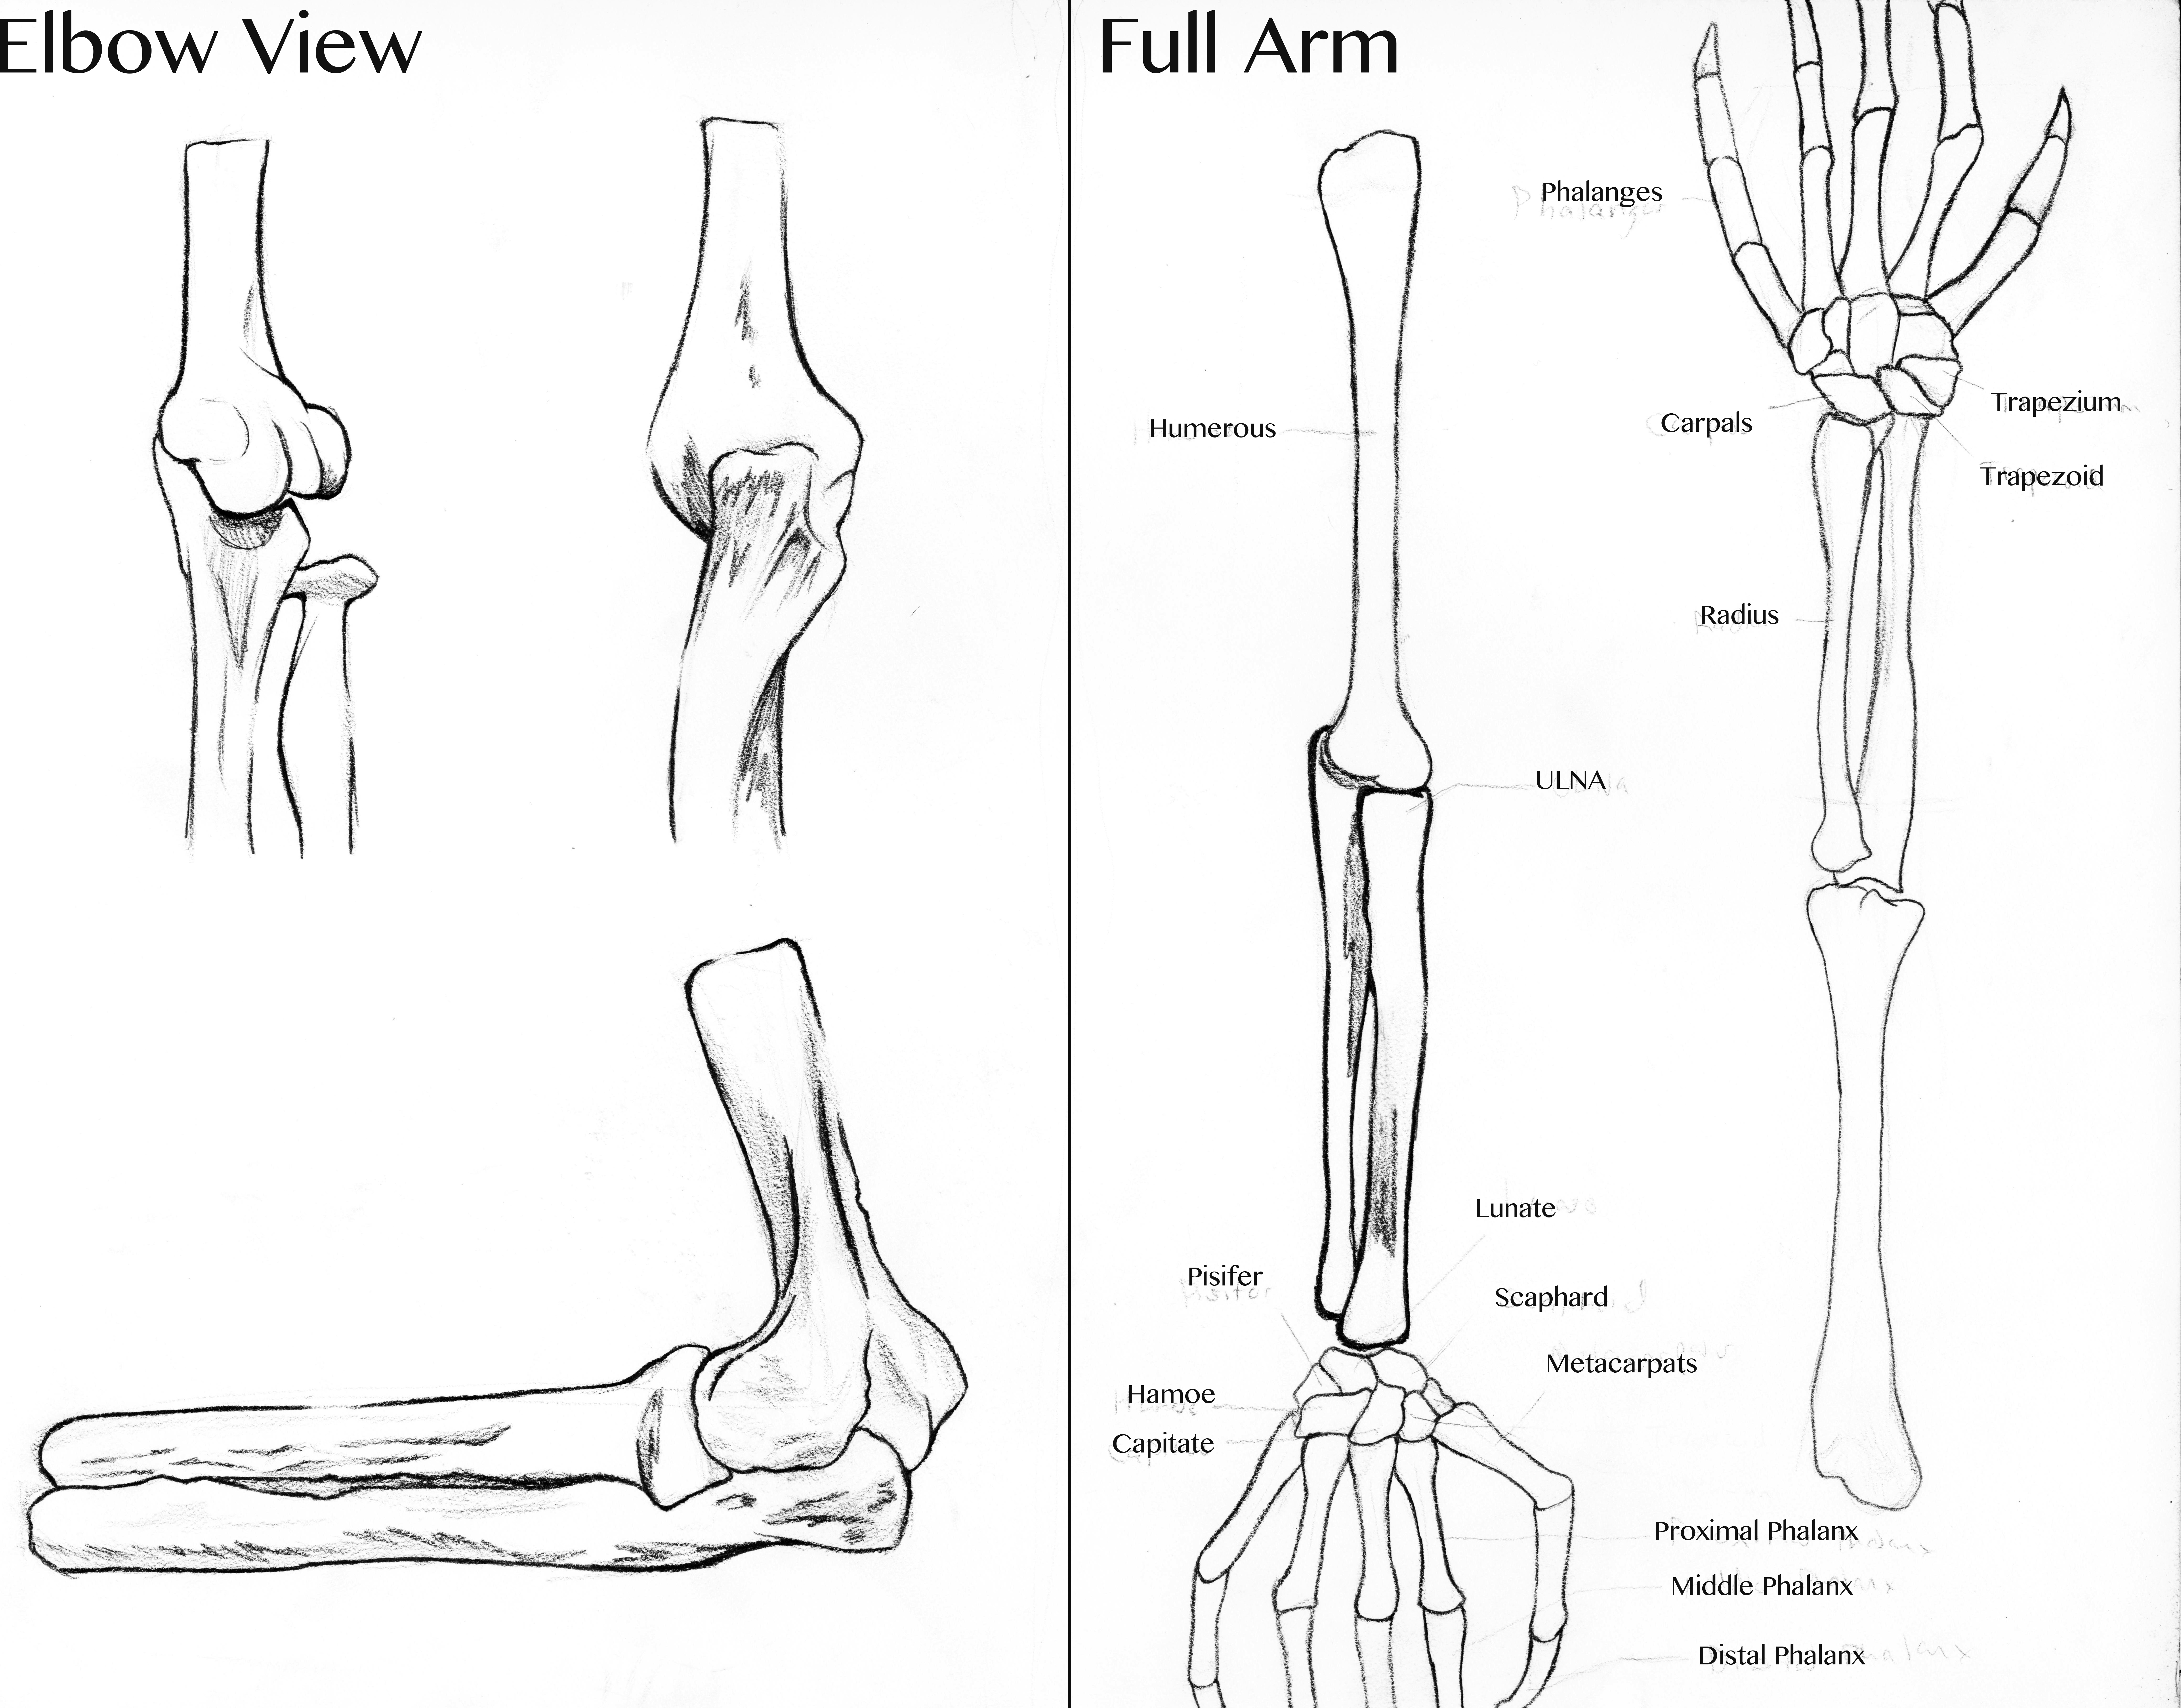 Skeleton Of Full Arm And Elbow